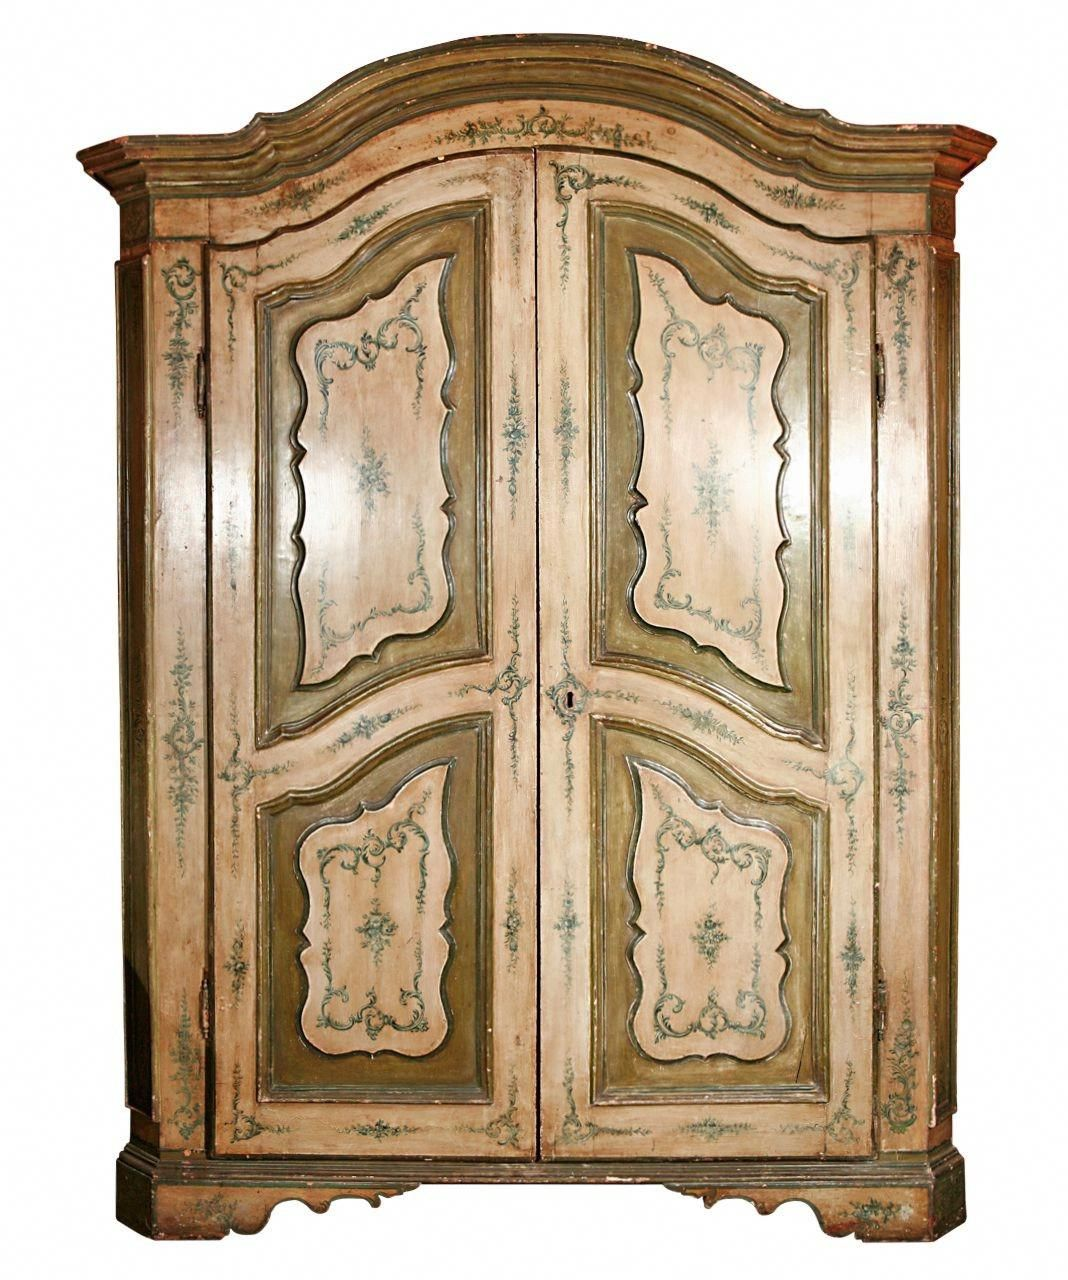 Vintage Furniture Uk | Antique Oak | Where To Sell Antique Furniture Online  20181124 - Vintage Furniture Uk Antique Oak Where To Sell Antique Furniture